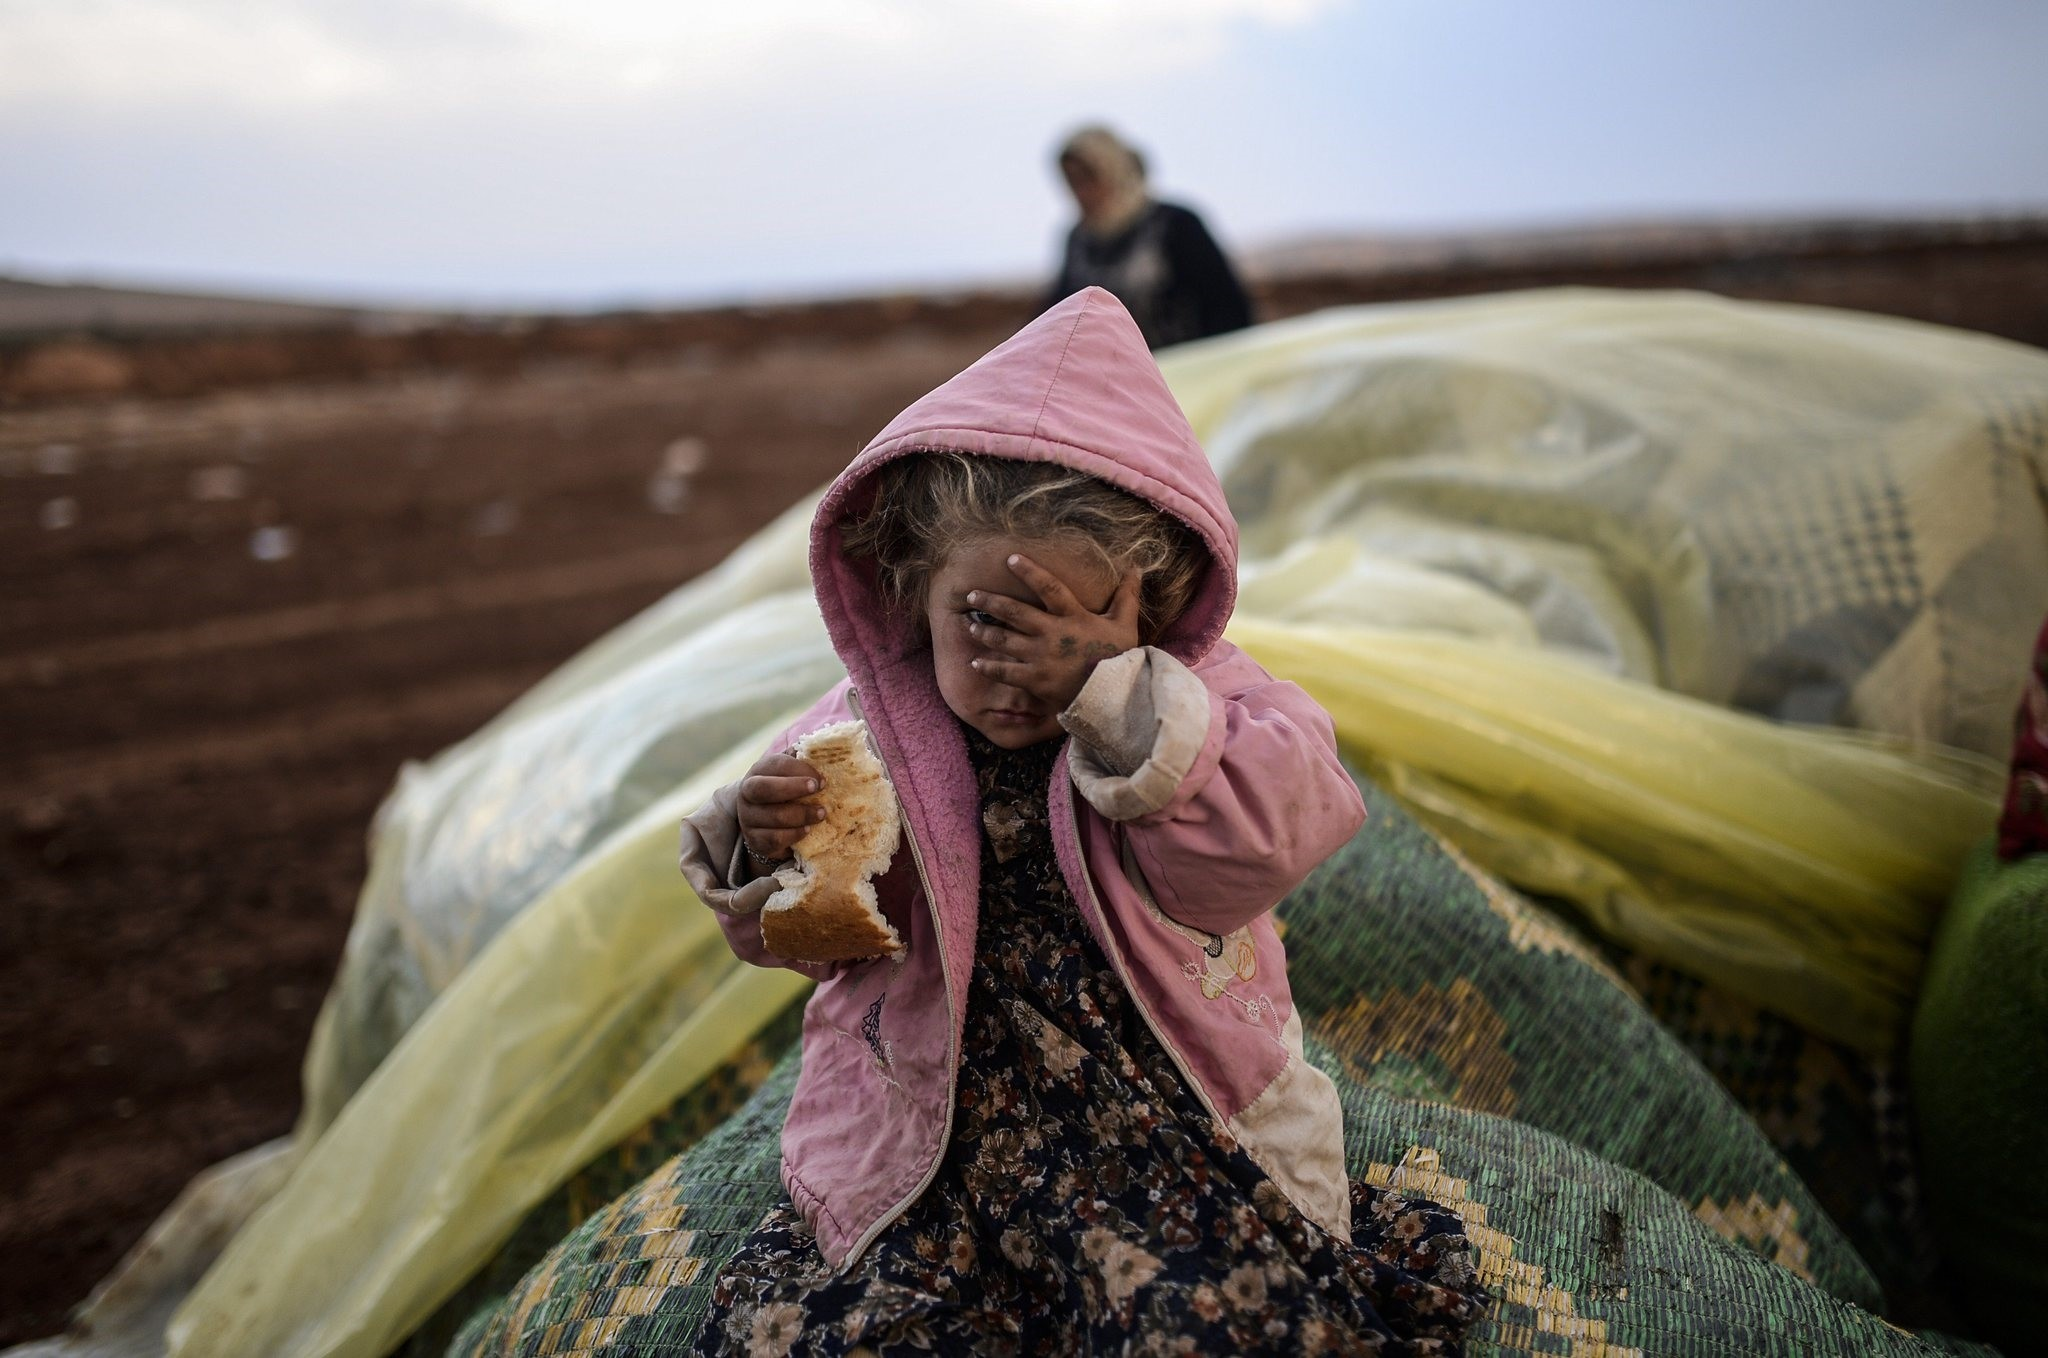 A Syrian Kurdish woman waits with her daughter near Syria border at southeastern town of Suruu00e7 in u015eanlu0131urfa. Since civil war in Syria broke out seven years ago,millions of people died and have been displaced;however, there is still no hope for peace.